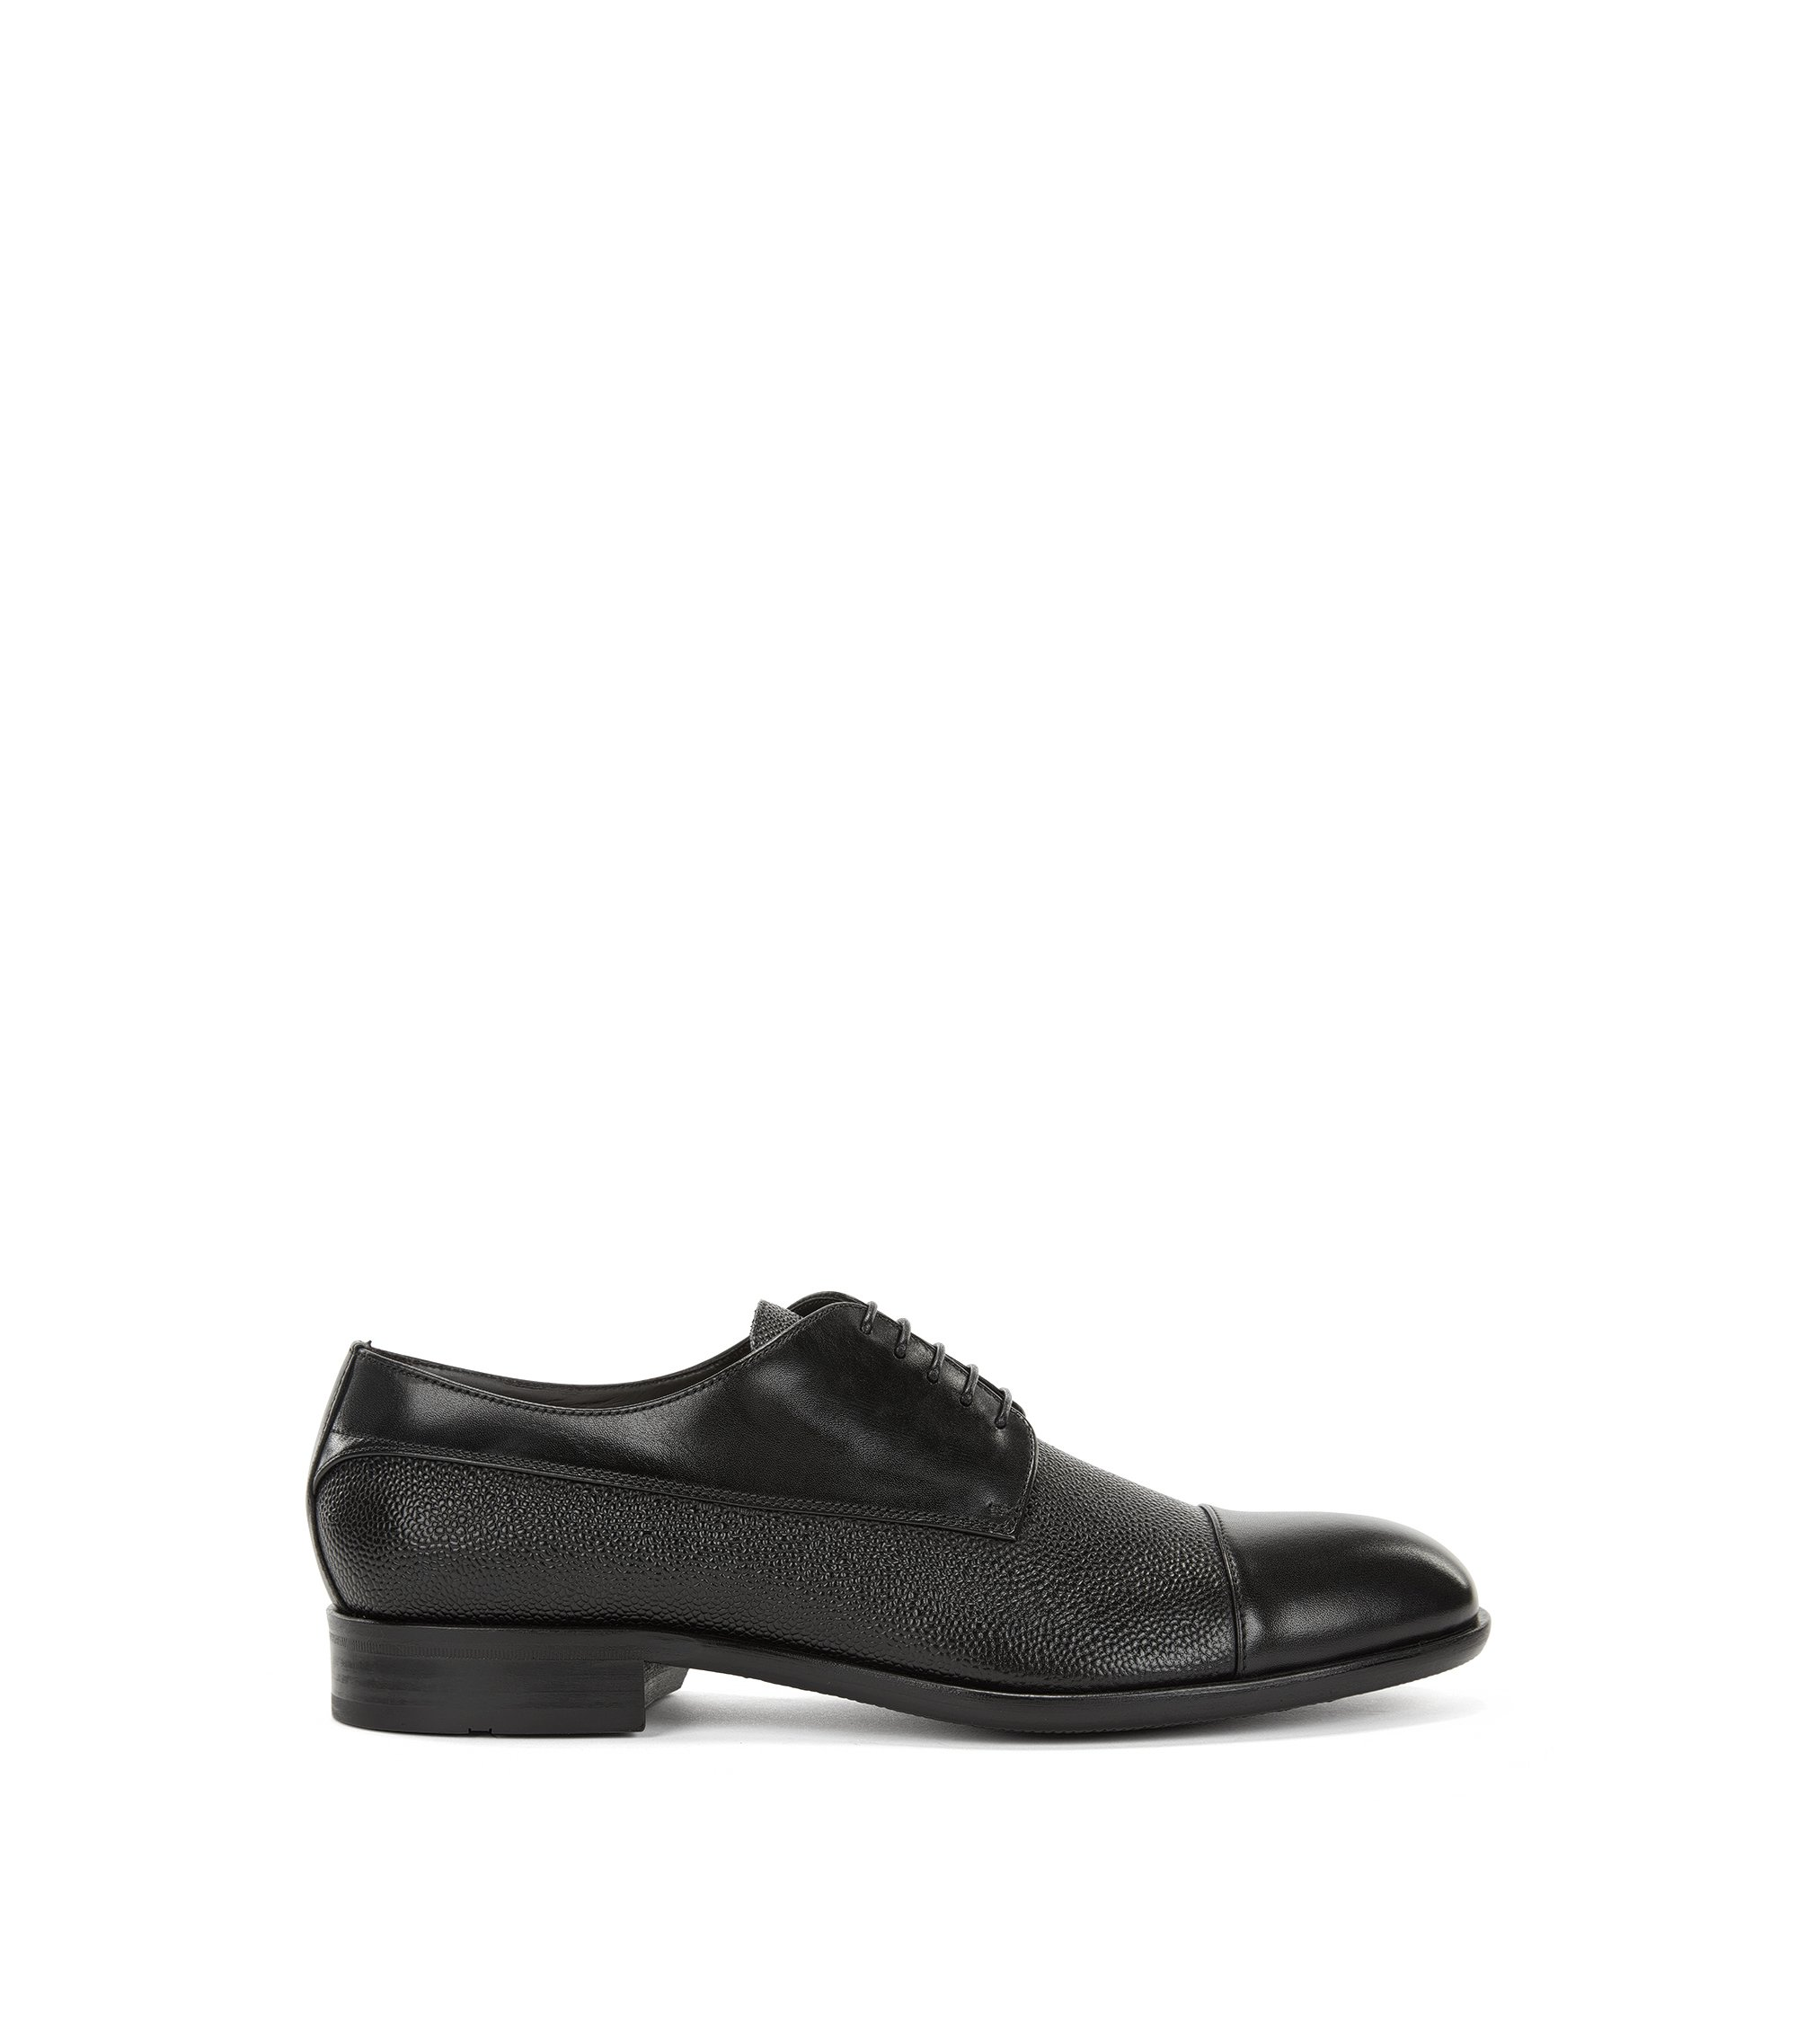 Leather Derby shoes with embossed details, Black